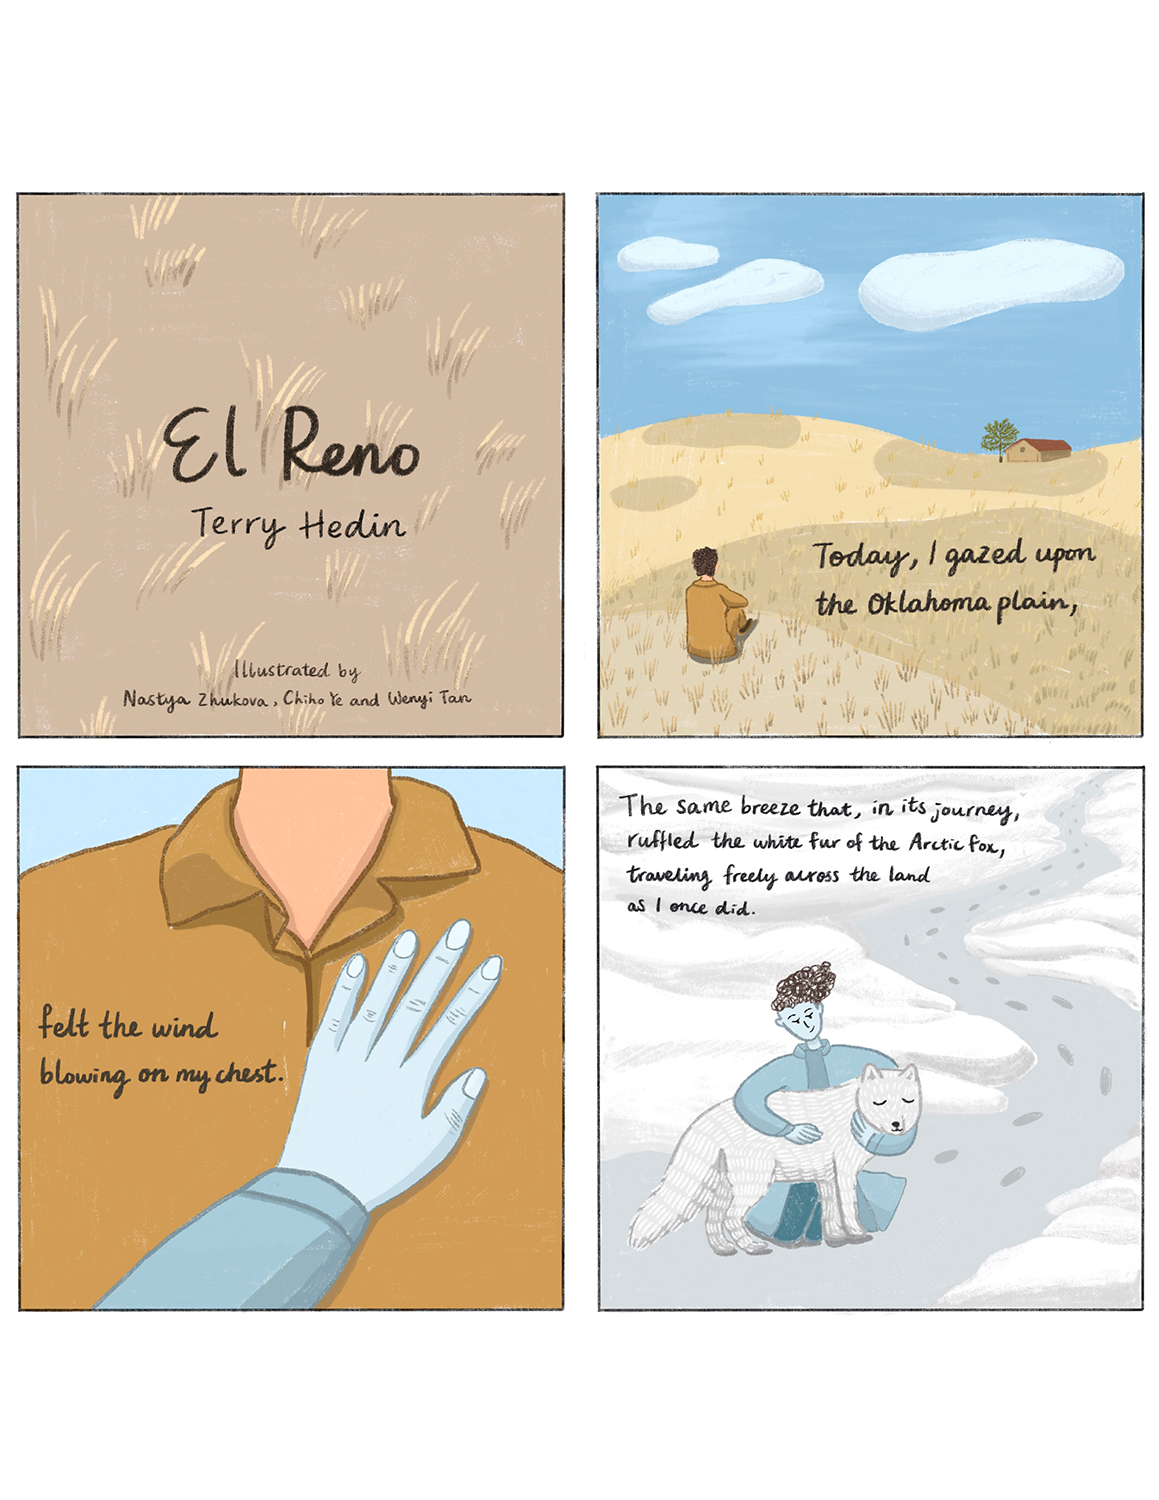 Four panel comic of man sitting in open prairie scene, the wind personified and touching his chest and holding an arctic fox.